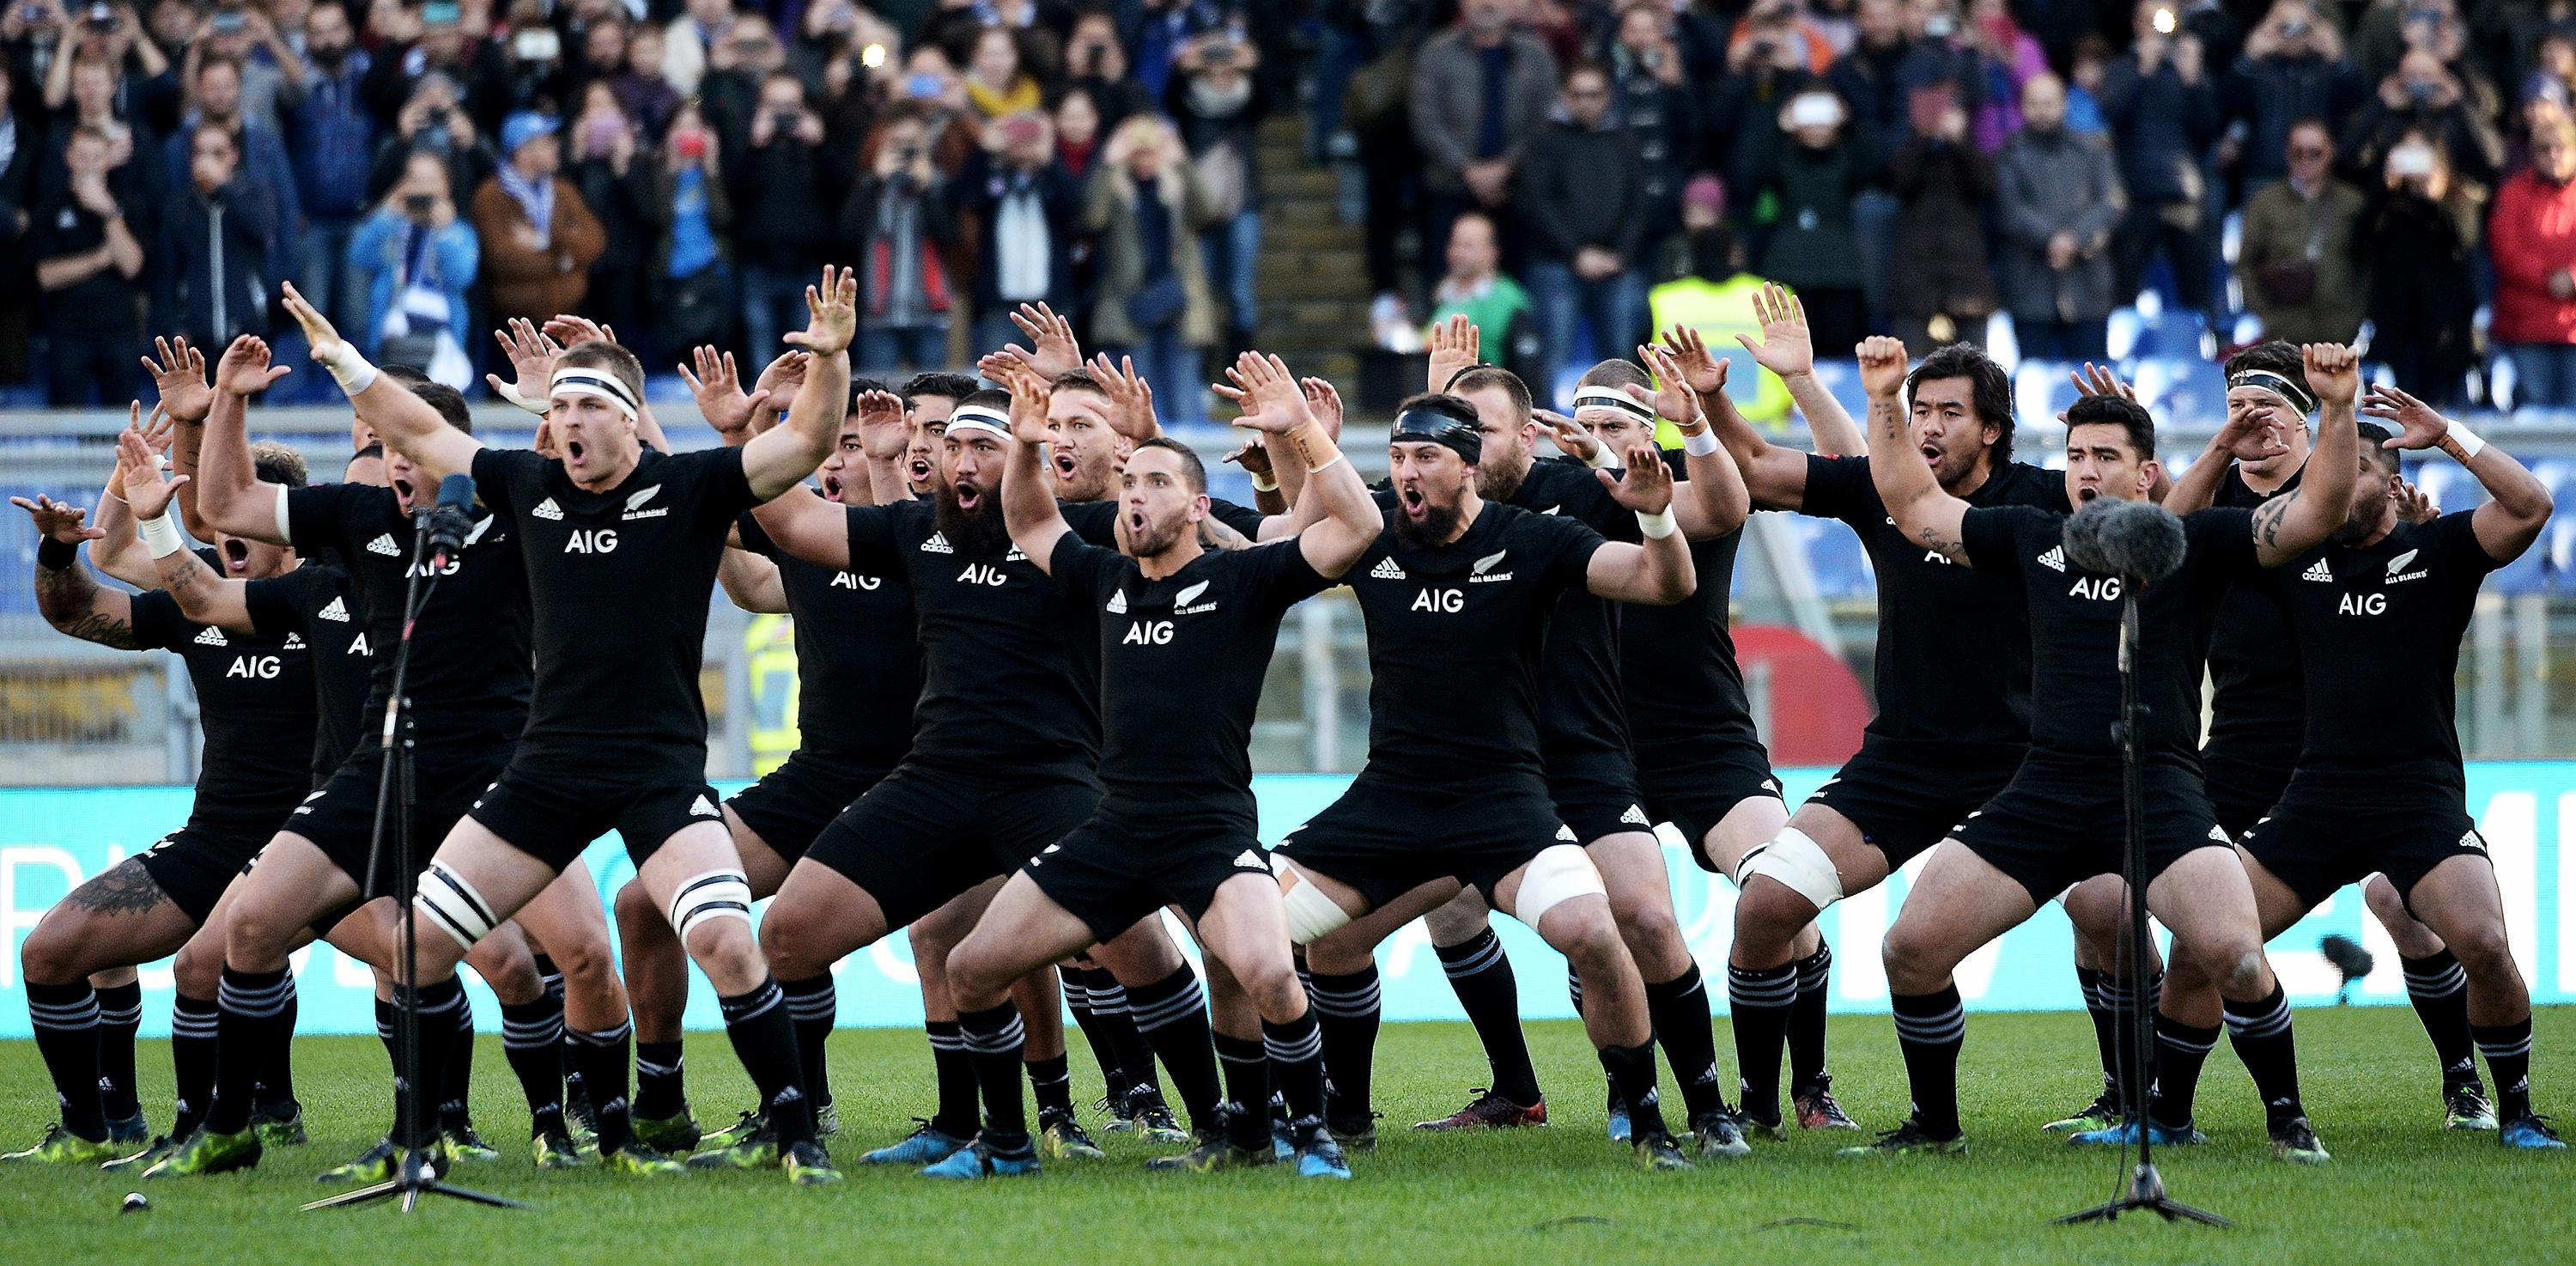 The All Blacks are one of the great international teams in the history of sport